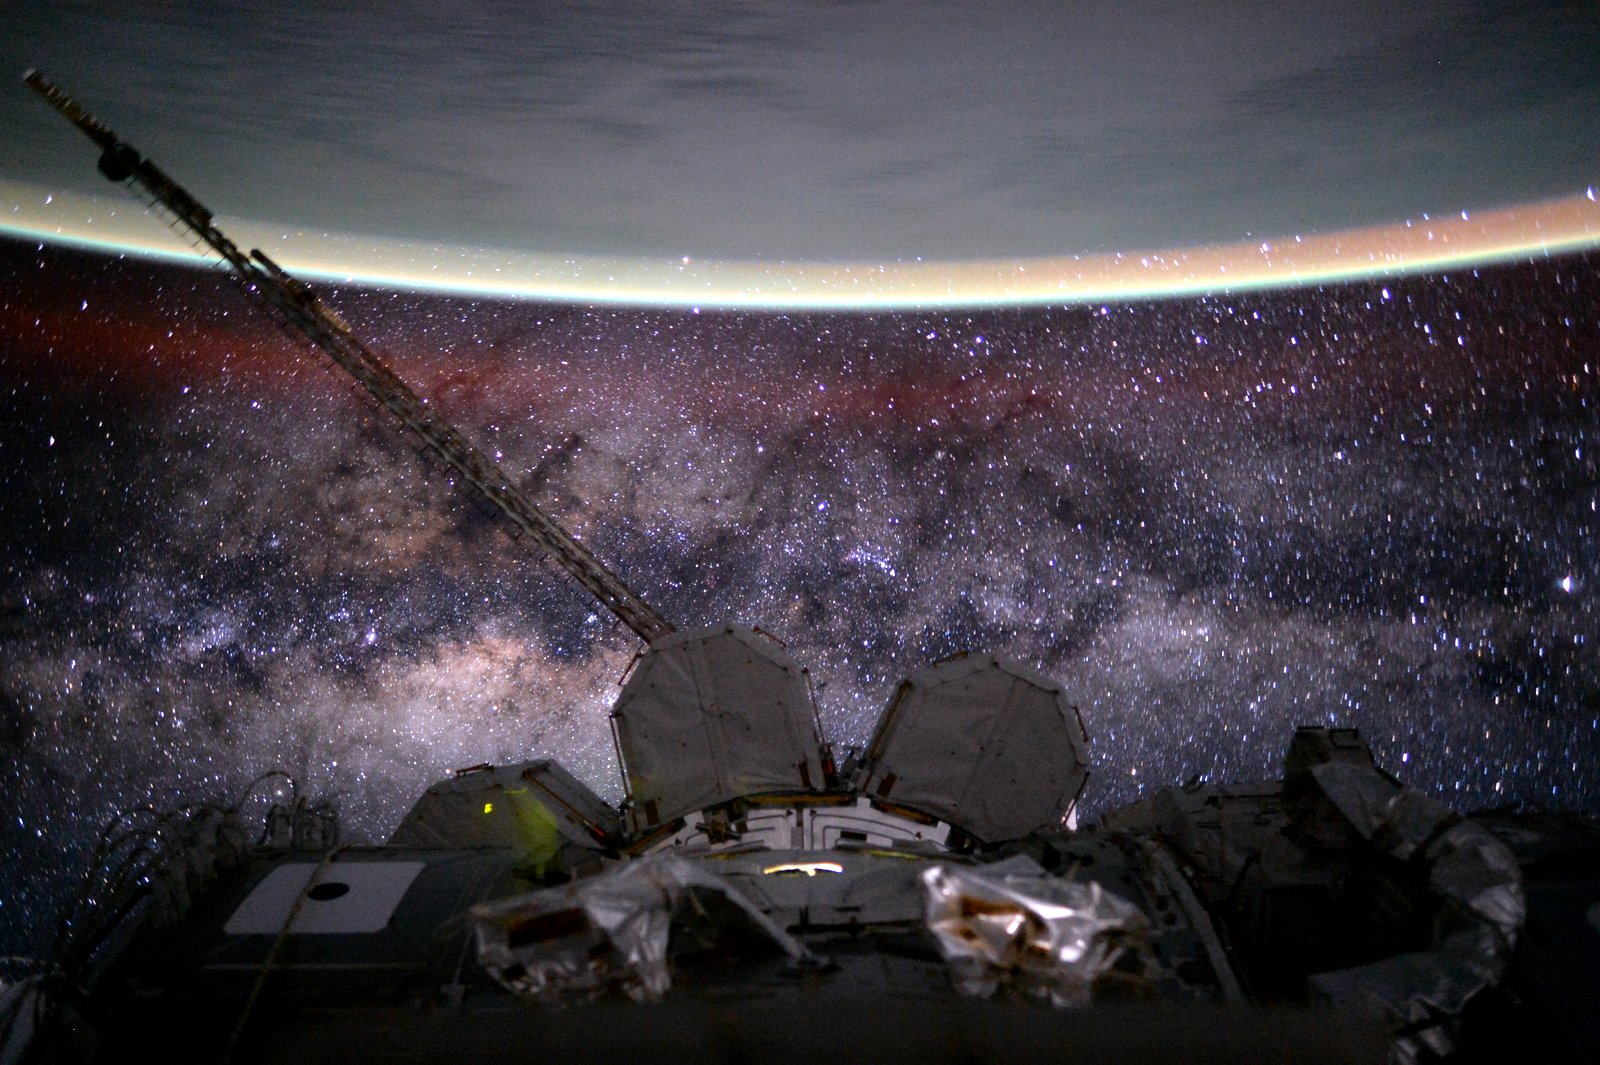 2015 November 7 - Earth and Milky Way from Space